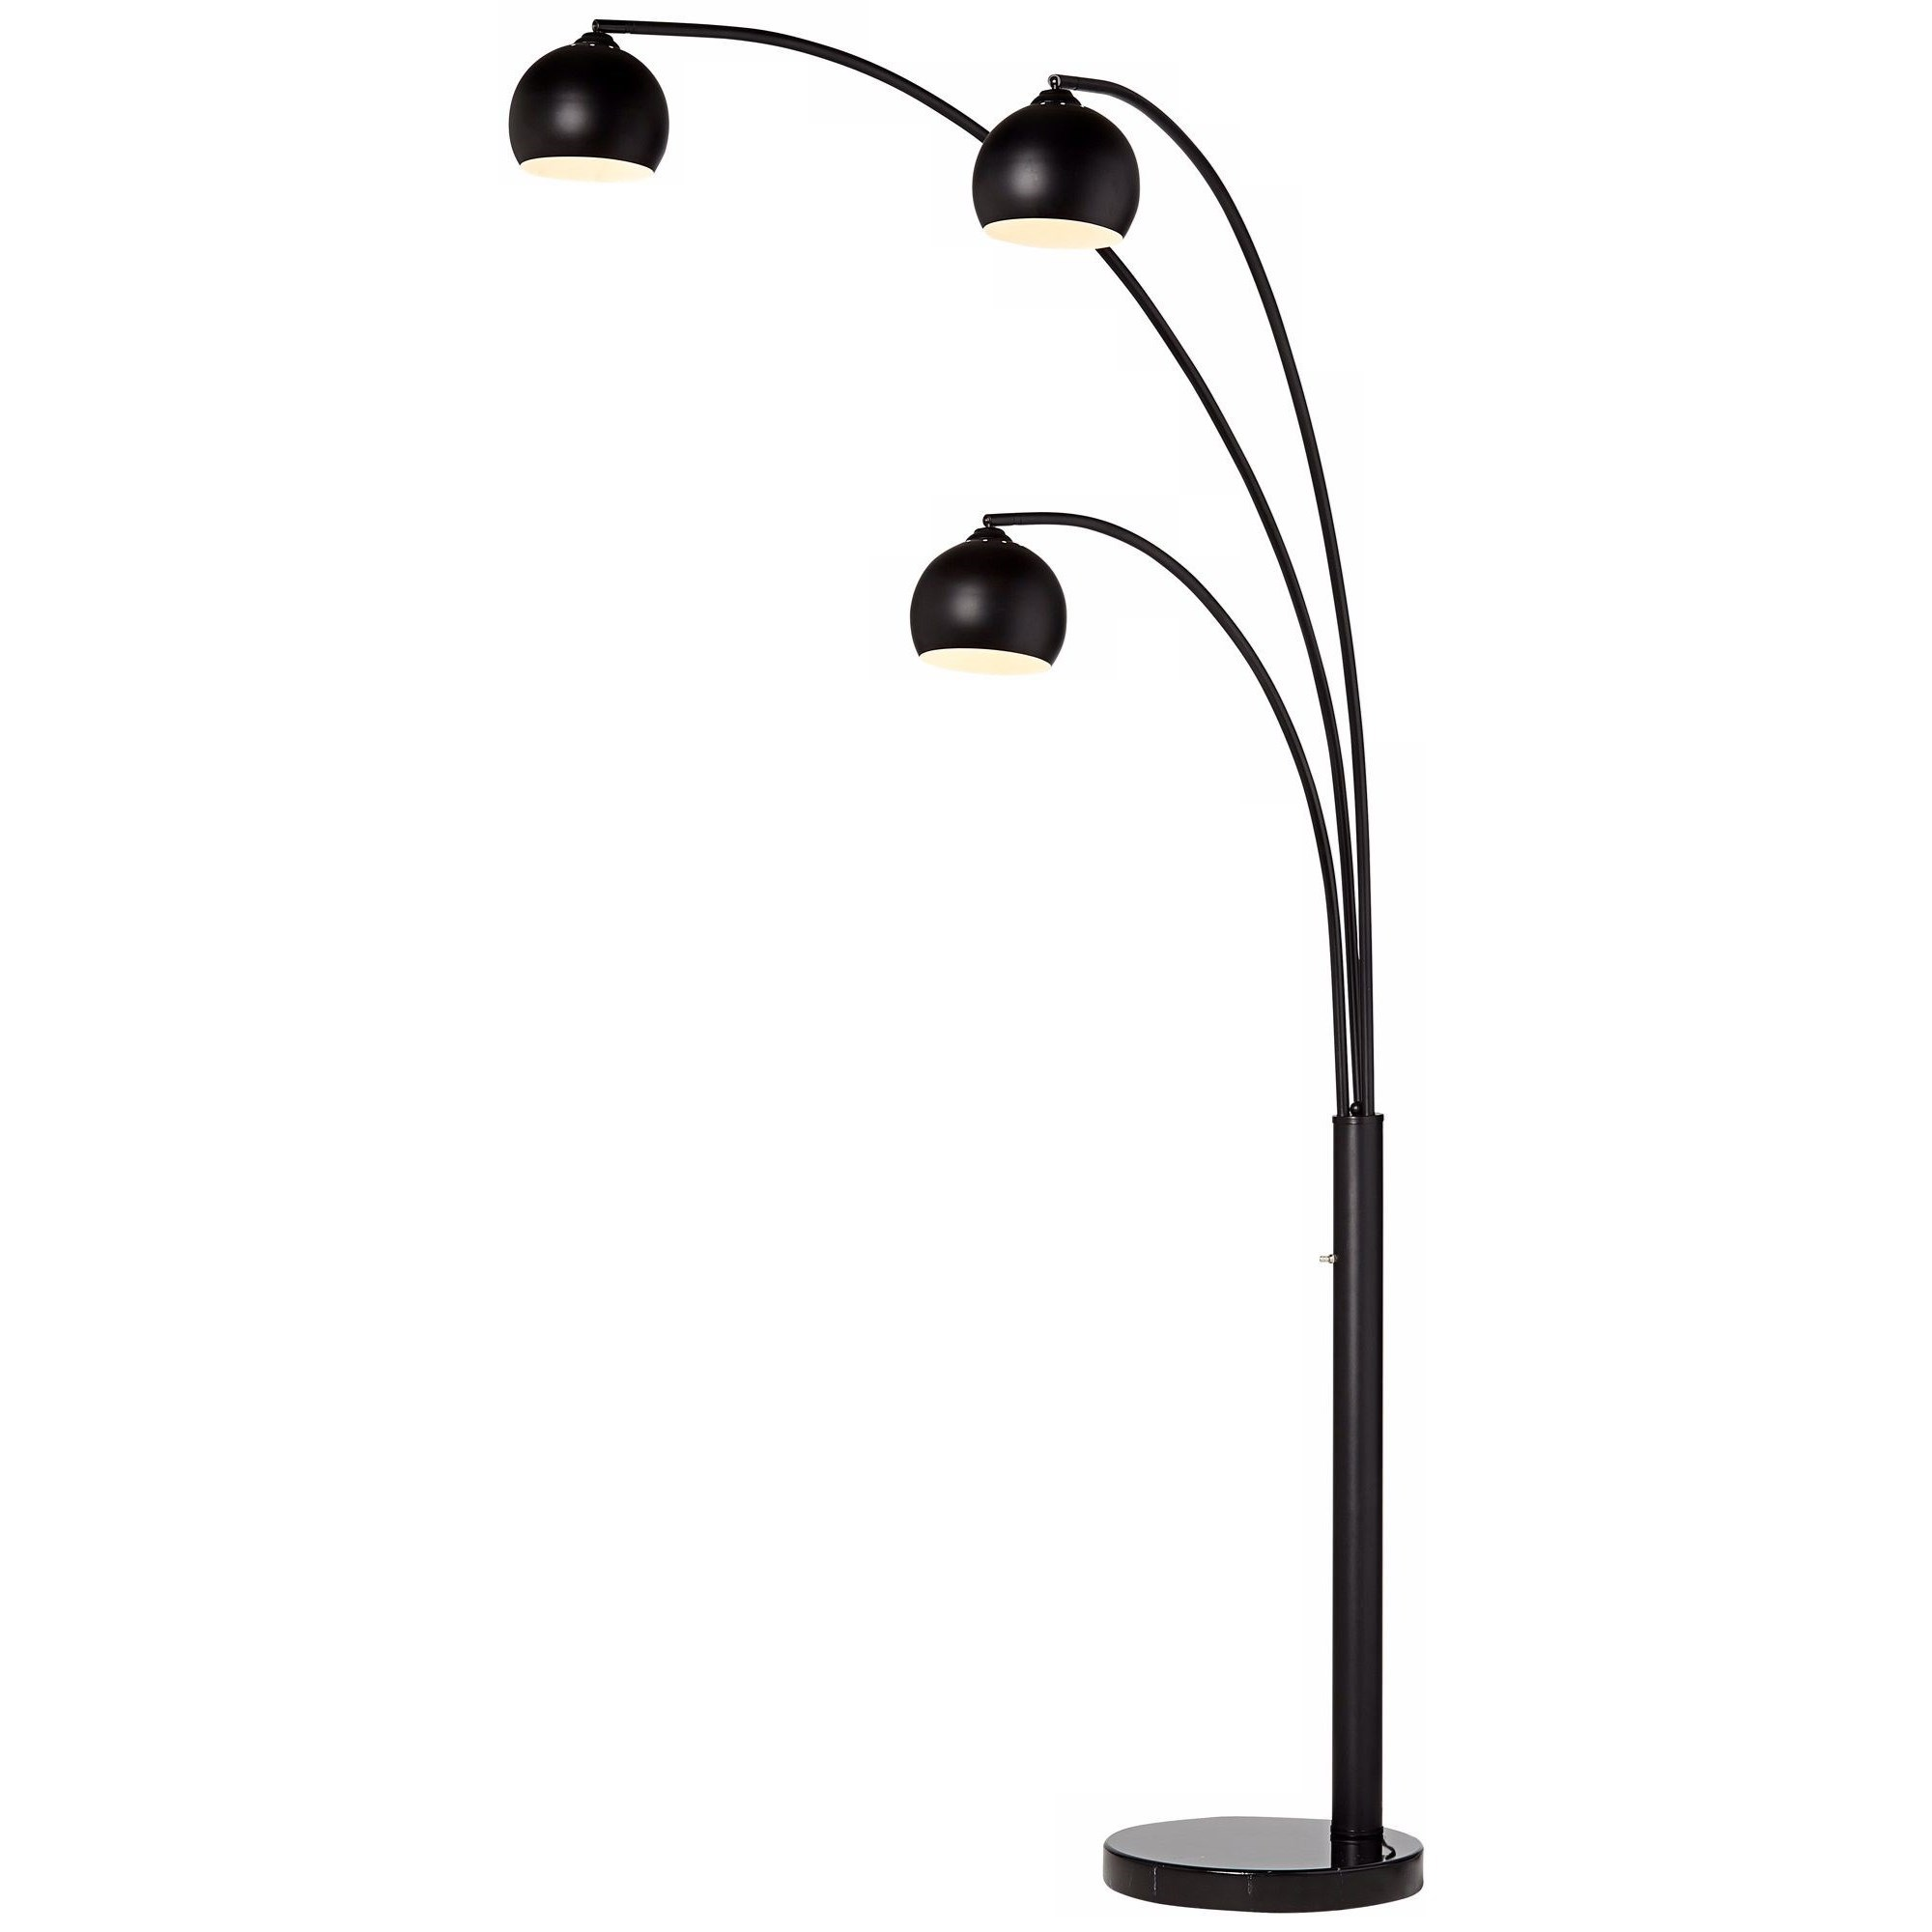 PCL FLOOR LAMPS Crosstown Arc Floor Lamp by PCL LIGHTING at Walker's Furniture